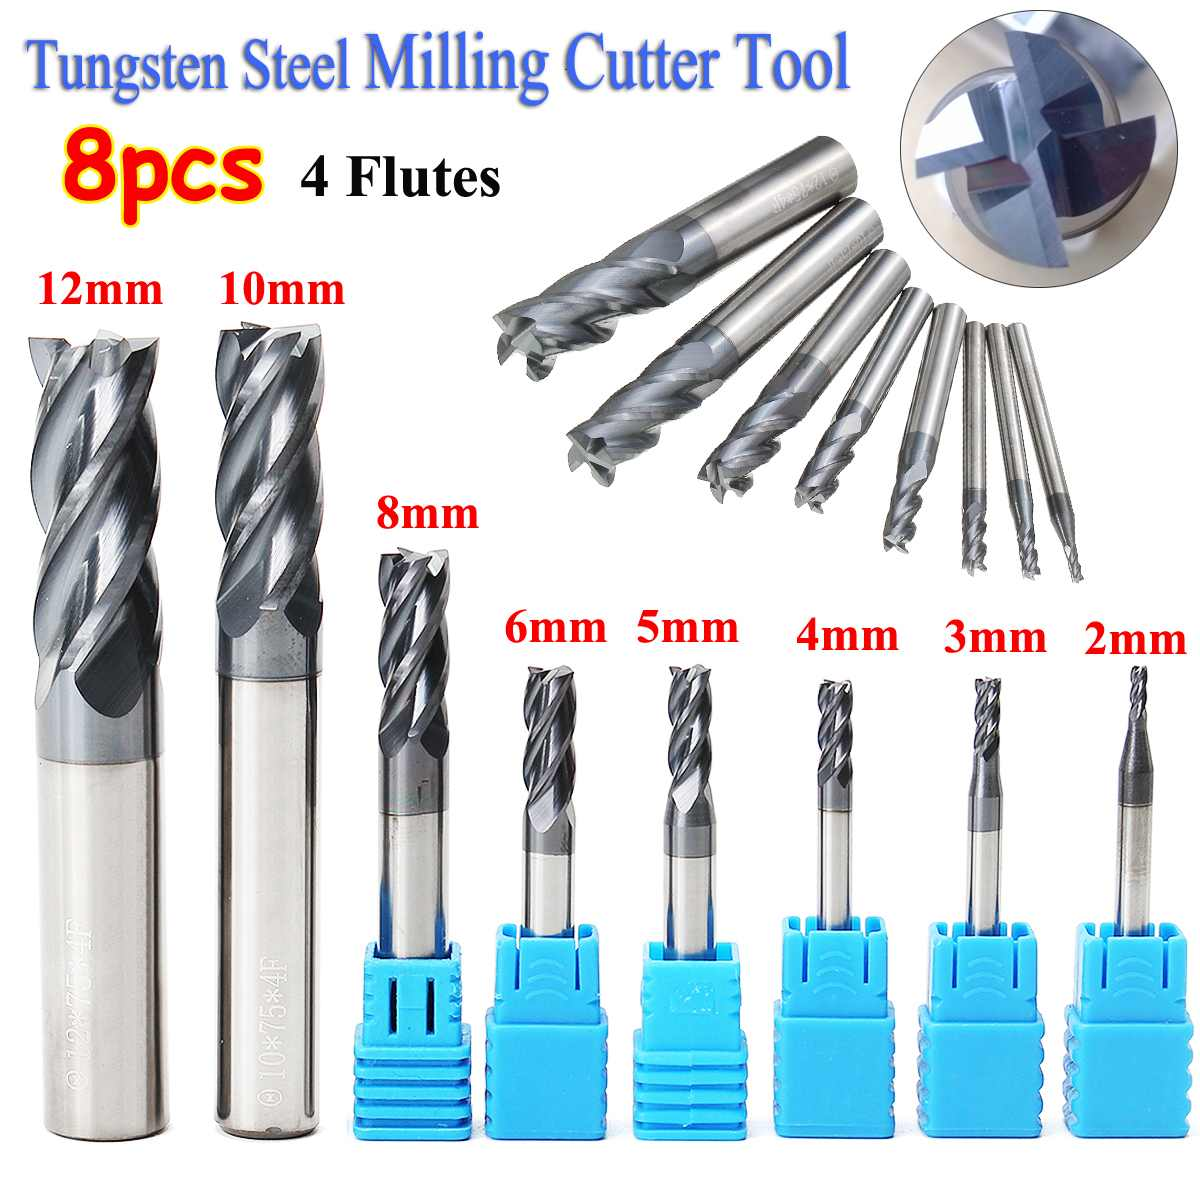 diameter 3mm HRC58 2 flutes Tungsten Carbide End Mill milling cutter CNC tool